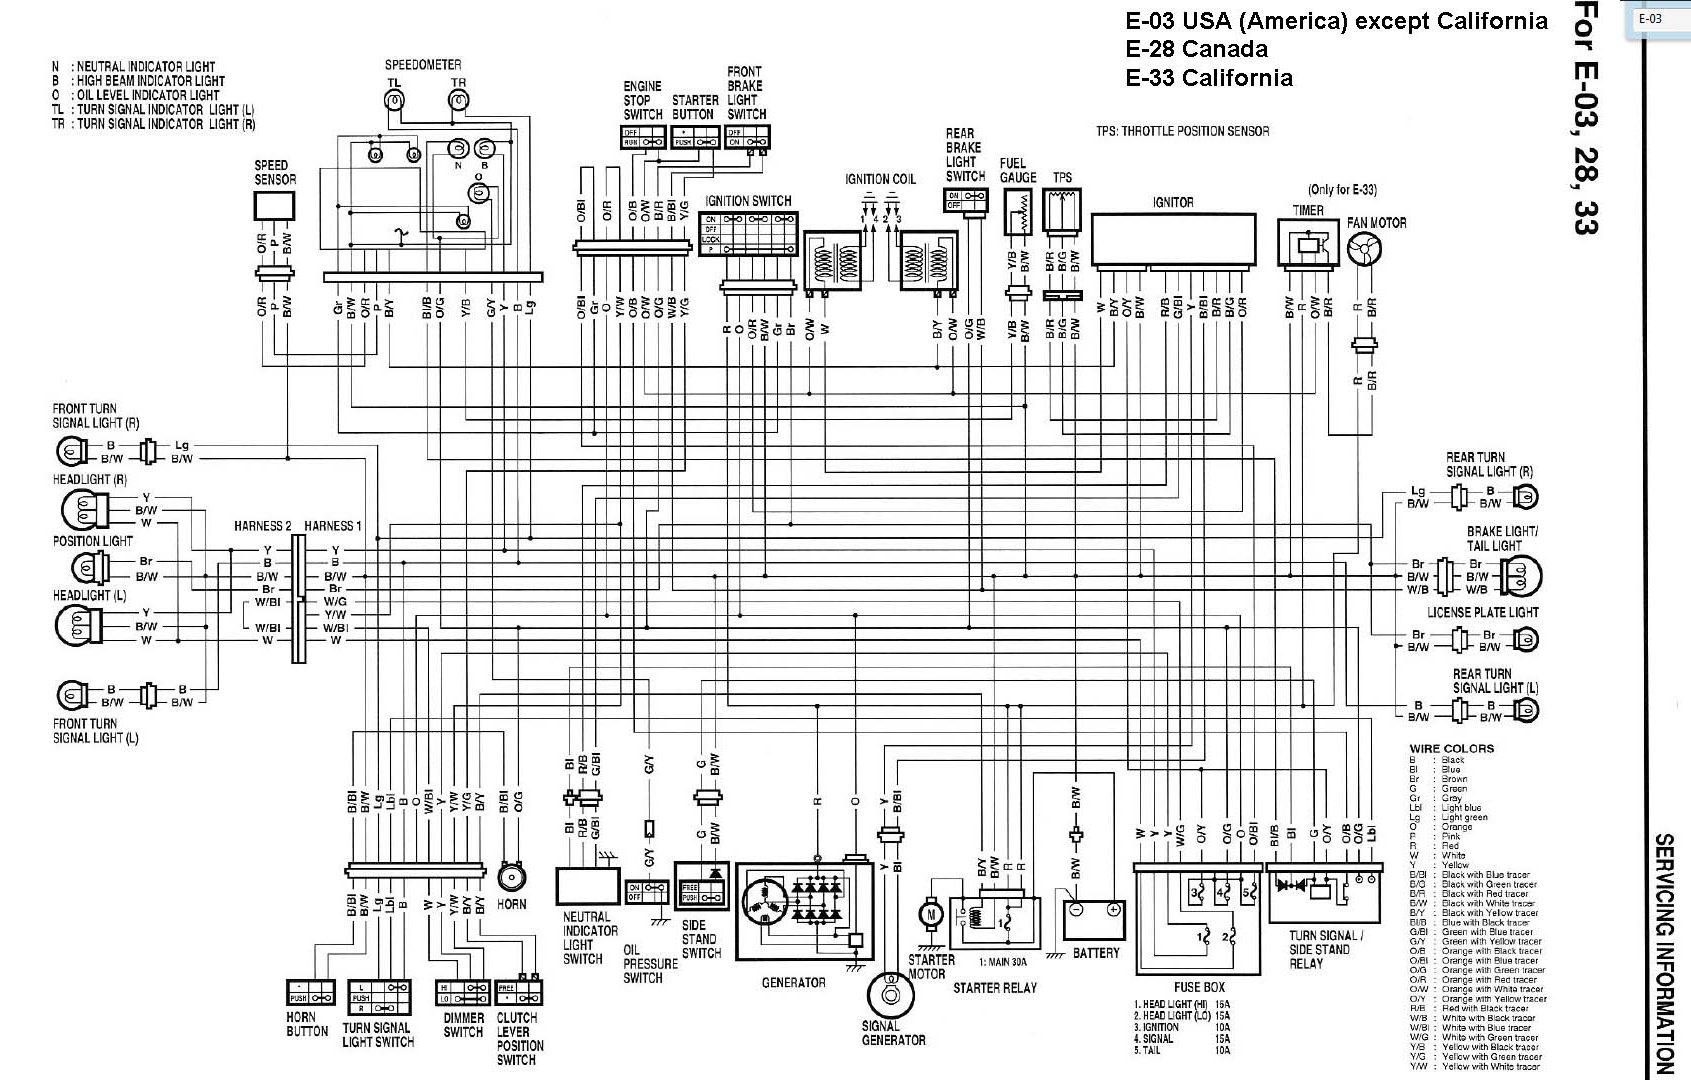 Astonishing Suzuki Gsxr 750 Wiring Diagram 1990 Ideas - Best Image ...